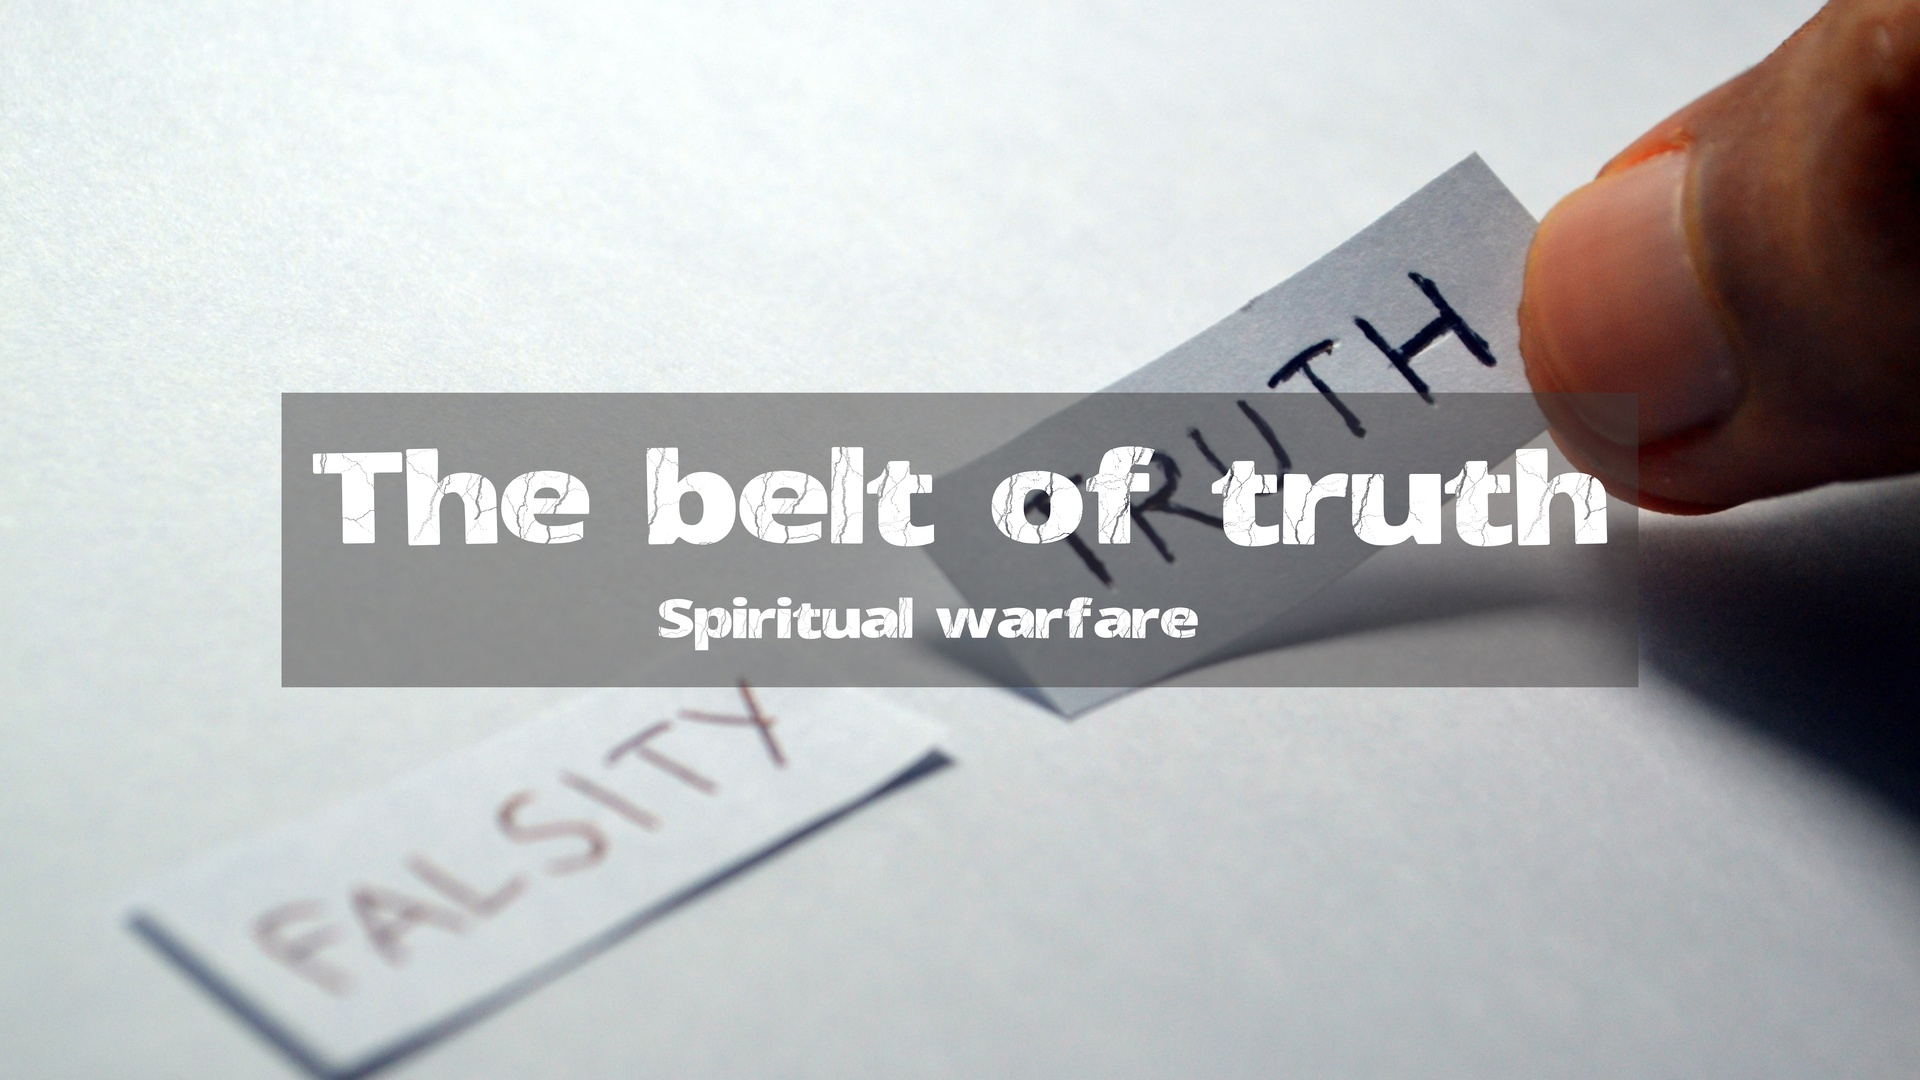 #4 The Belt of Truth